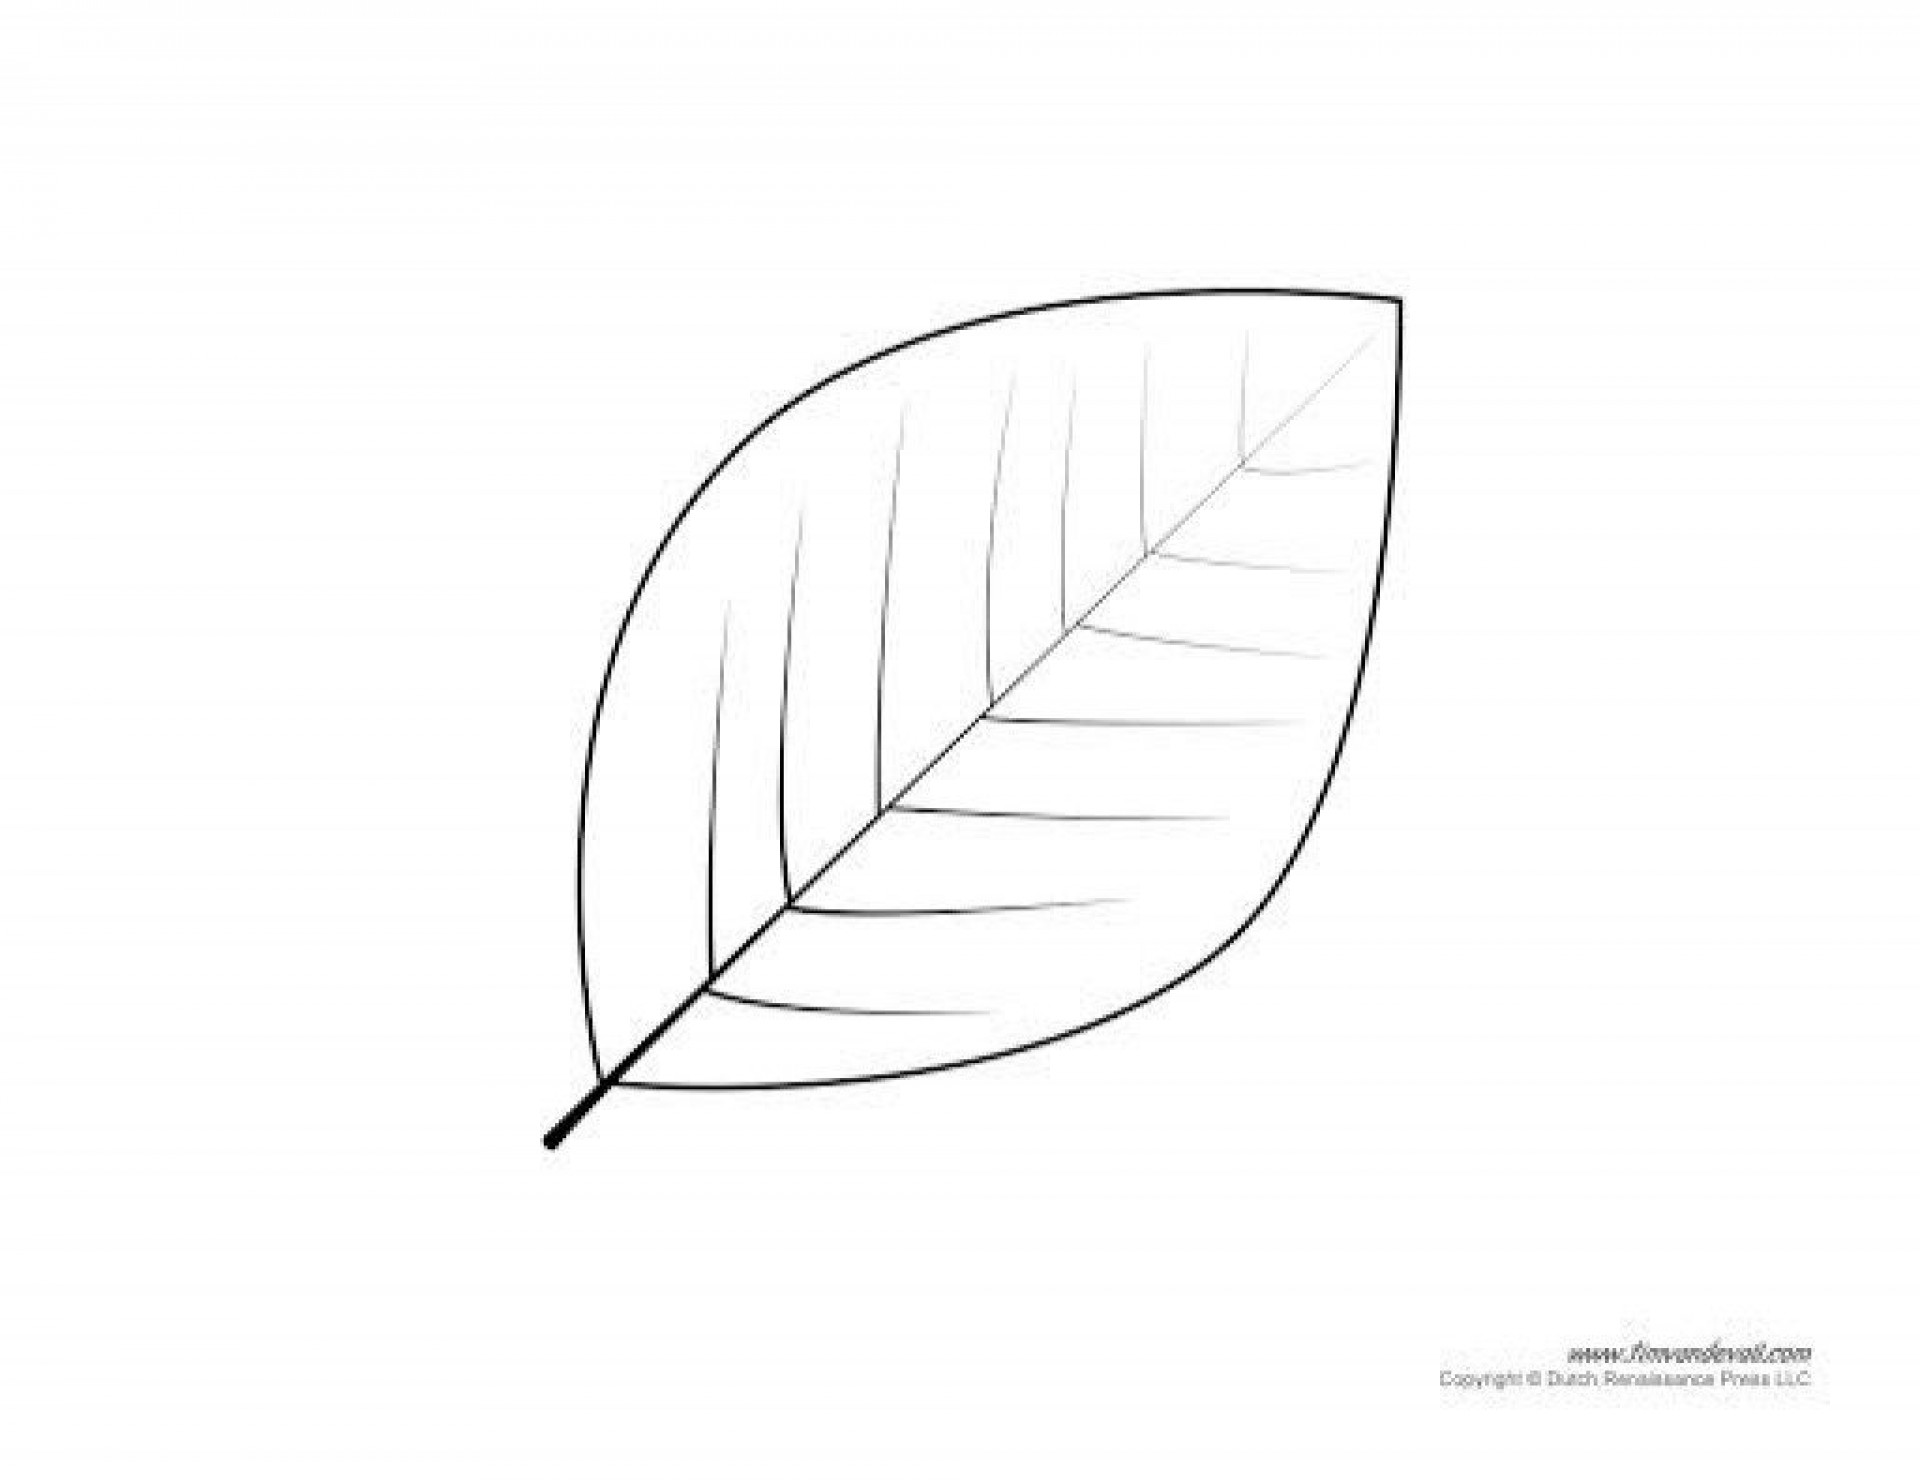 006 Fearsome Blank Leaf Template With Line Highest Quality  Lines Printable1920